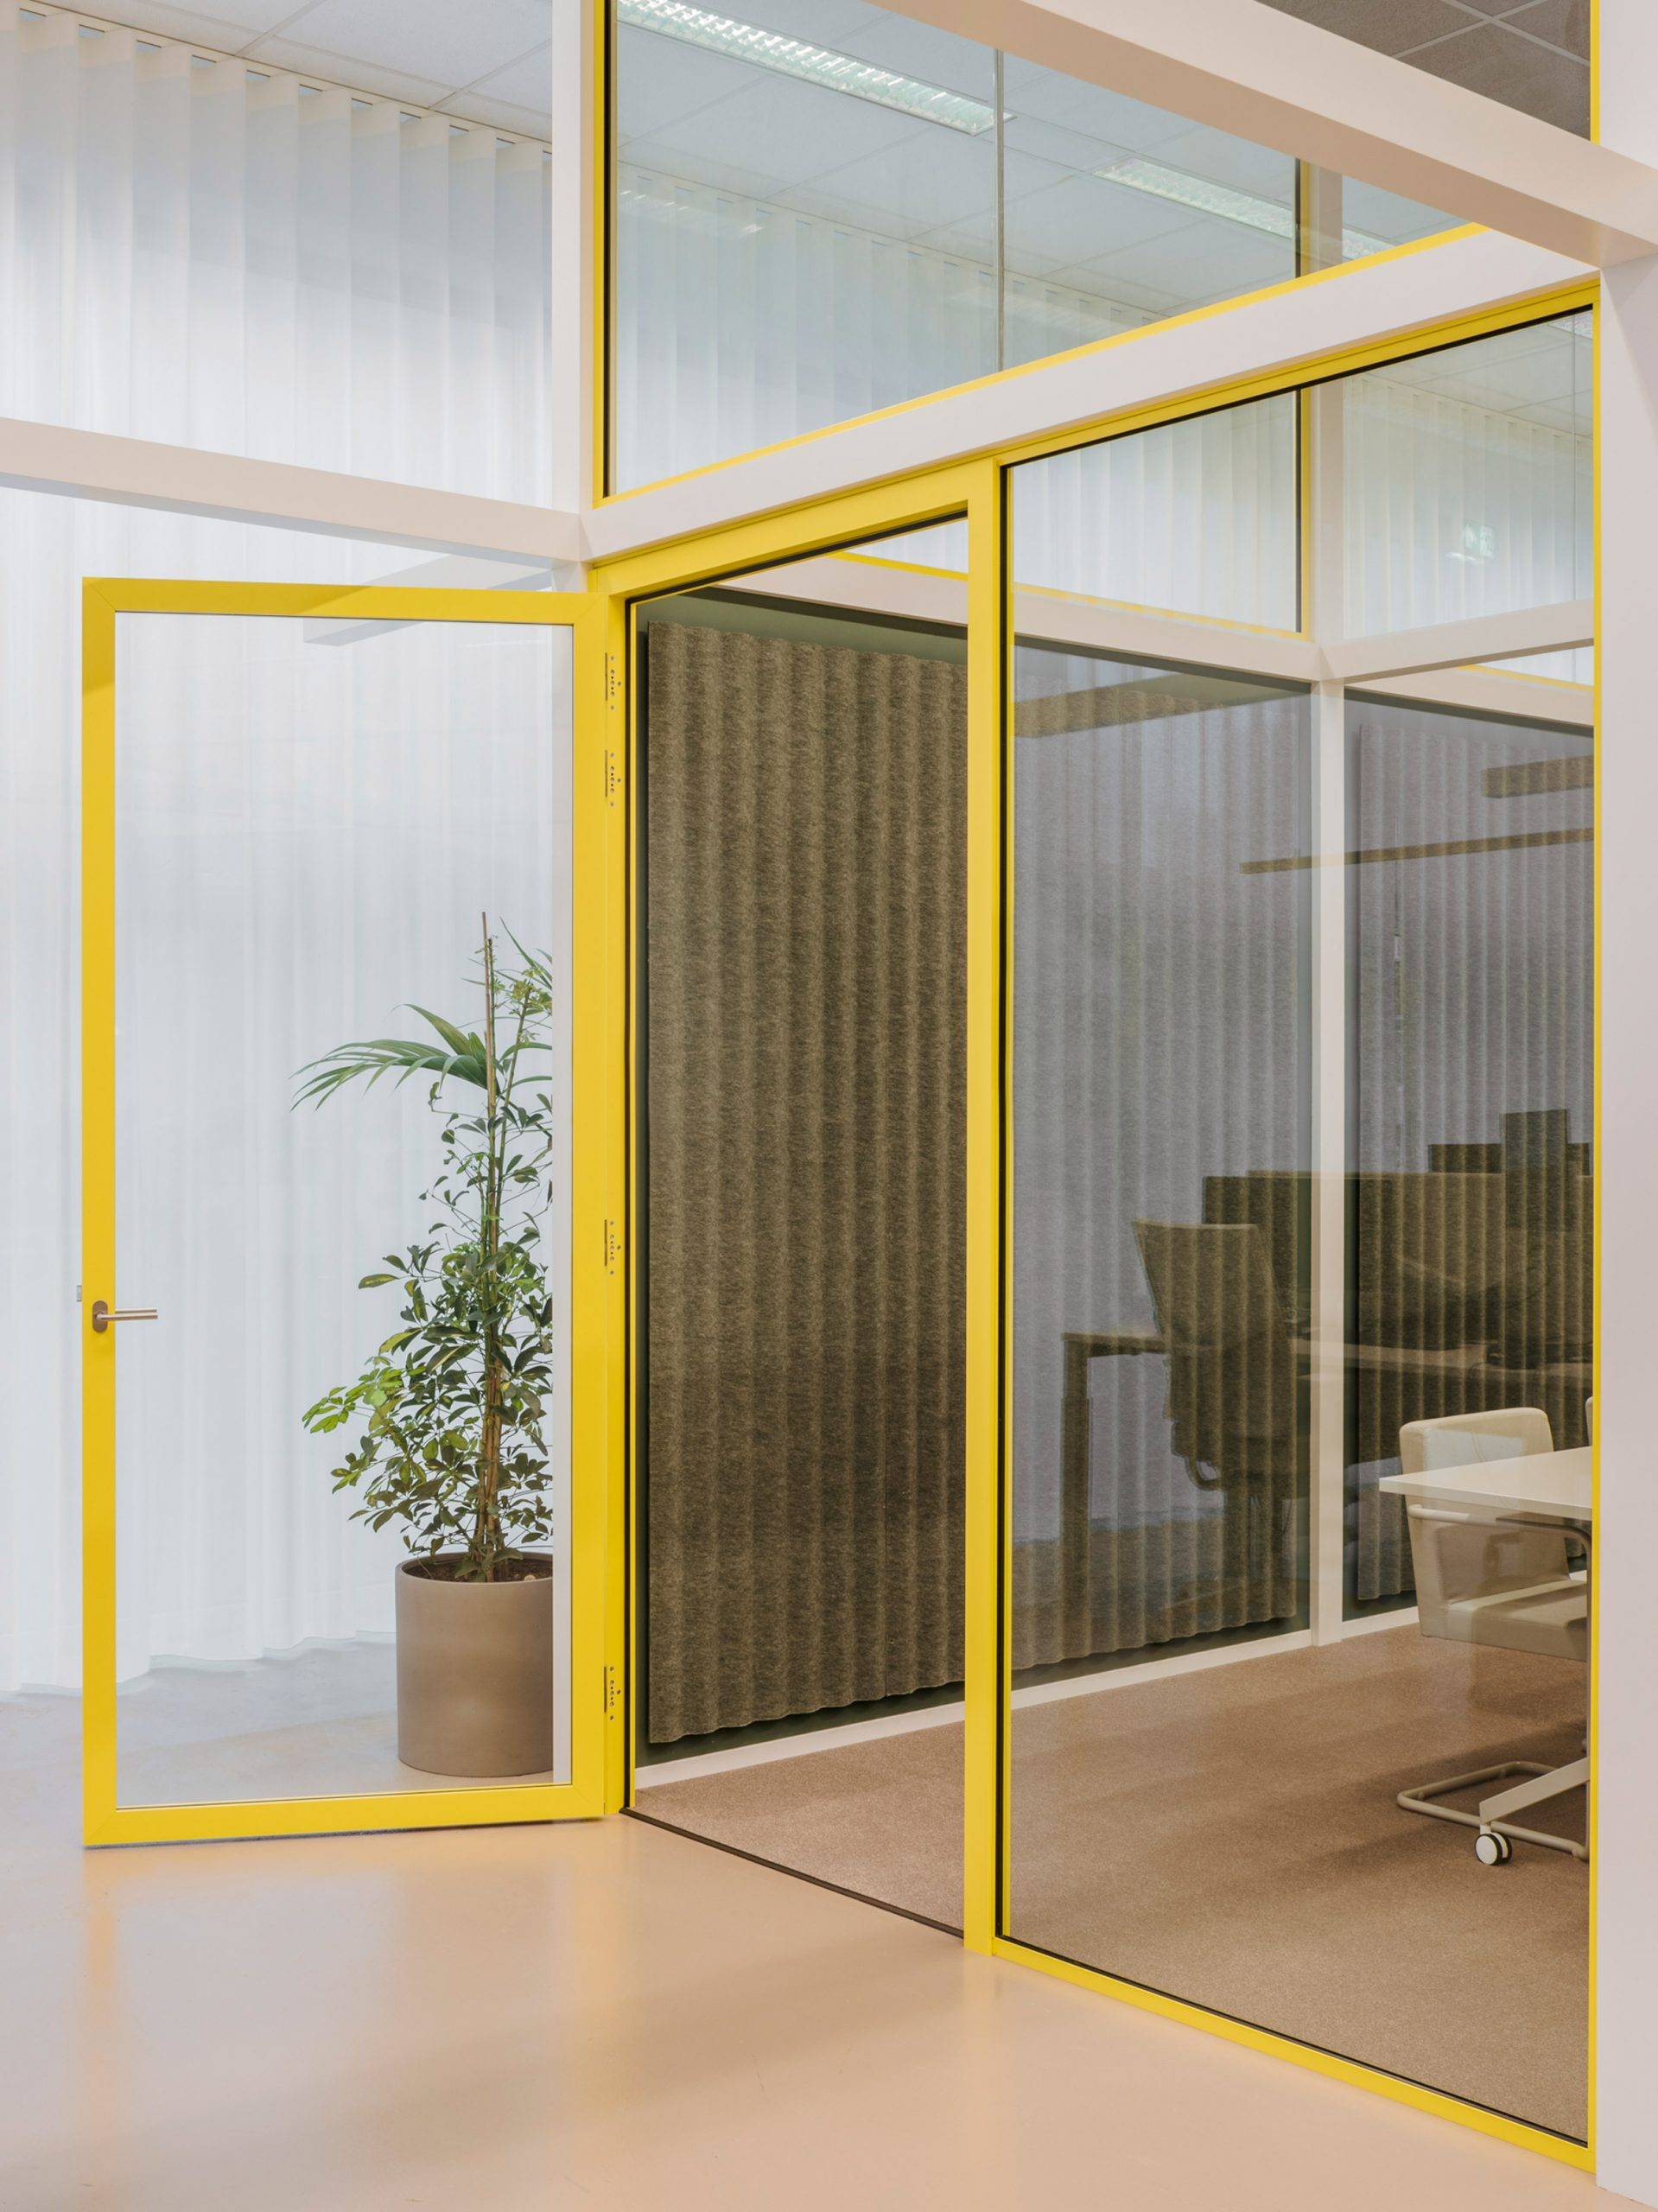 Carpet and felt covers the walls and floors in the enclosed office spaces